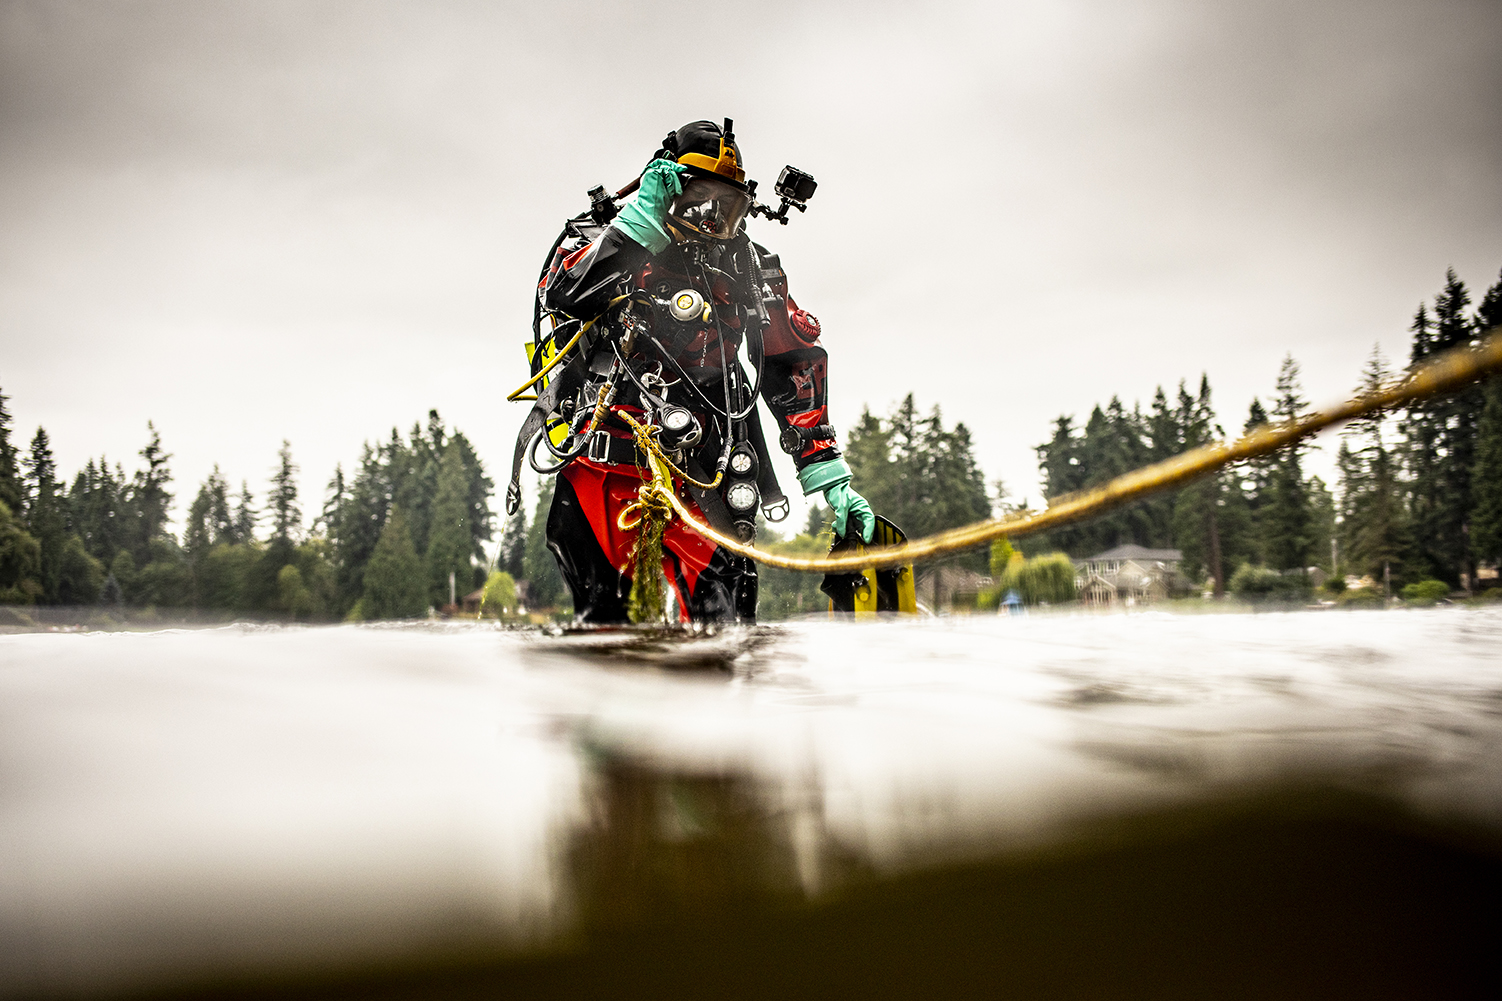 An EPA diver deploys instruments in Lake Killarney, where a team of UW researchers is exploring how arsenic travels from the lakebed to the food web. (Photo by Dennis Wise)